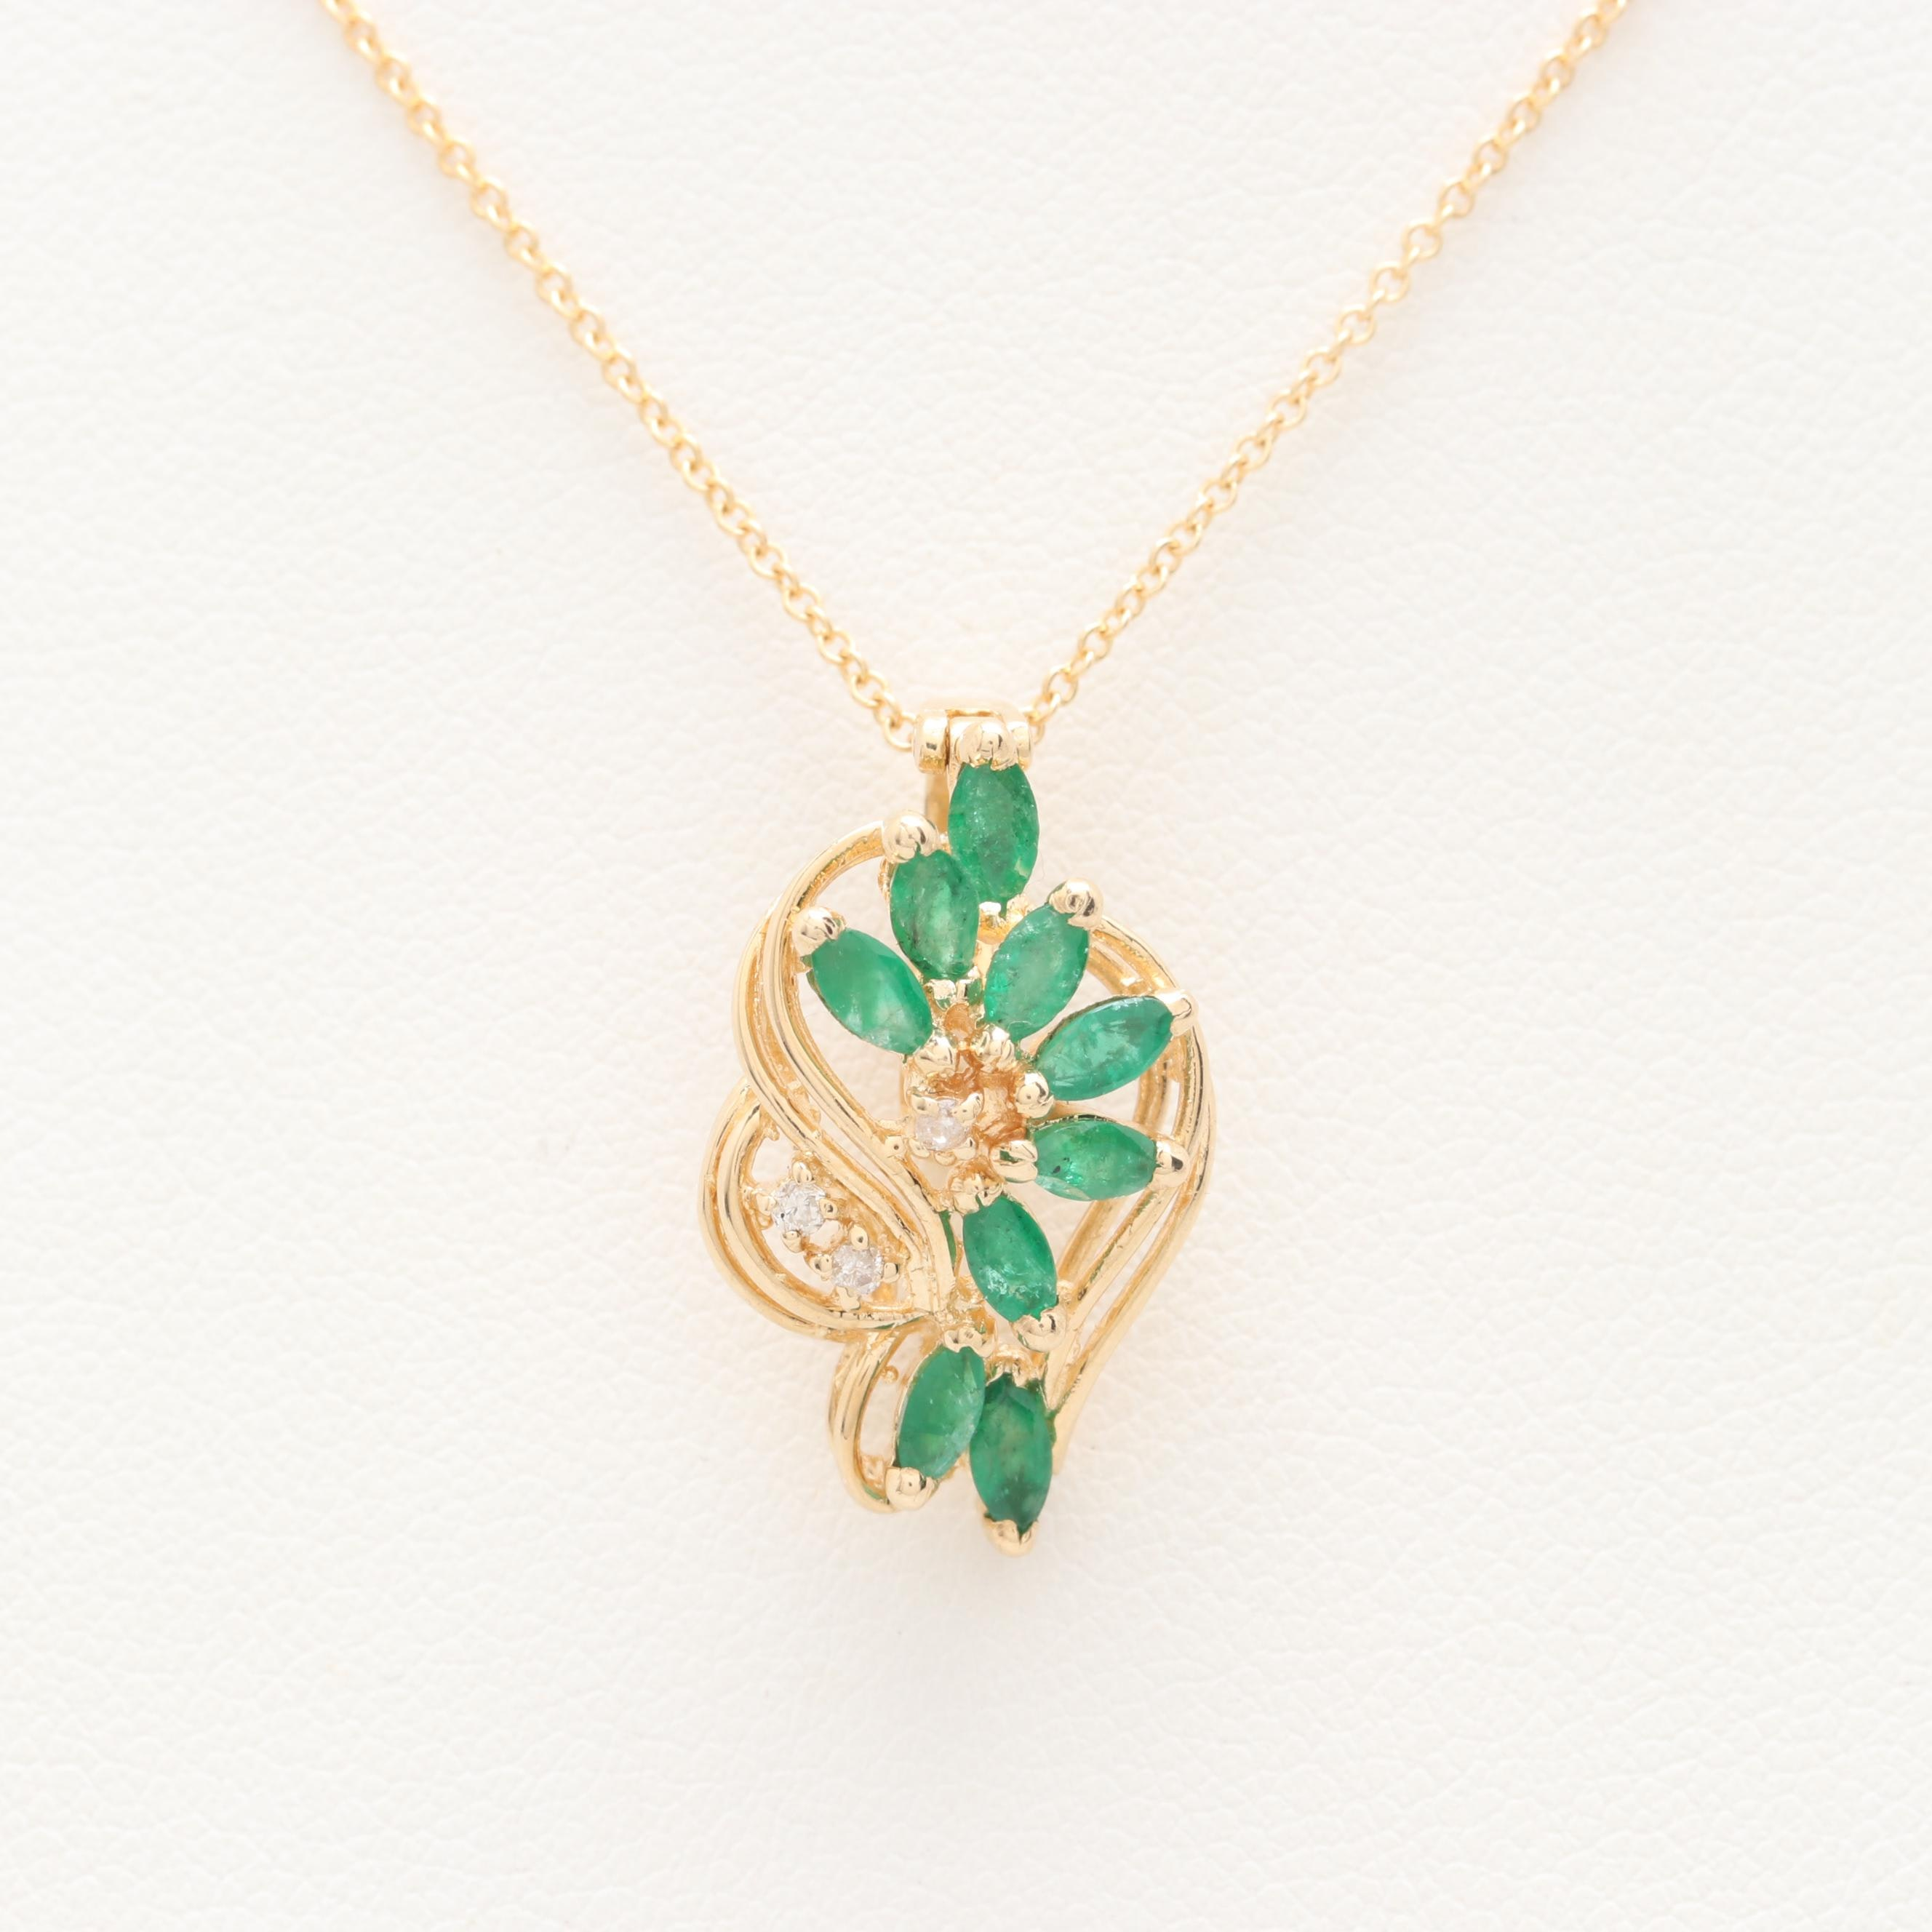 14K Yellow Gold Emerald and Diamond Pendant with Herco Chain Necklace